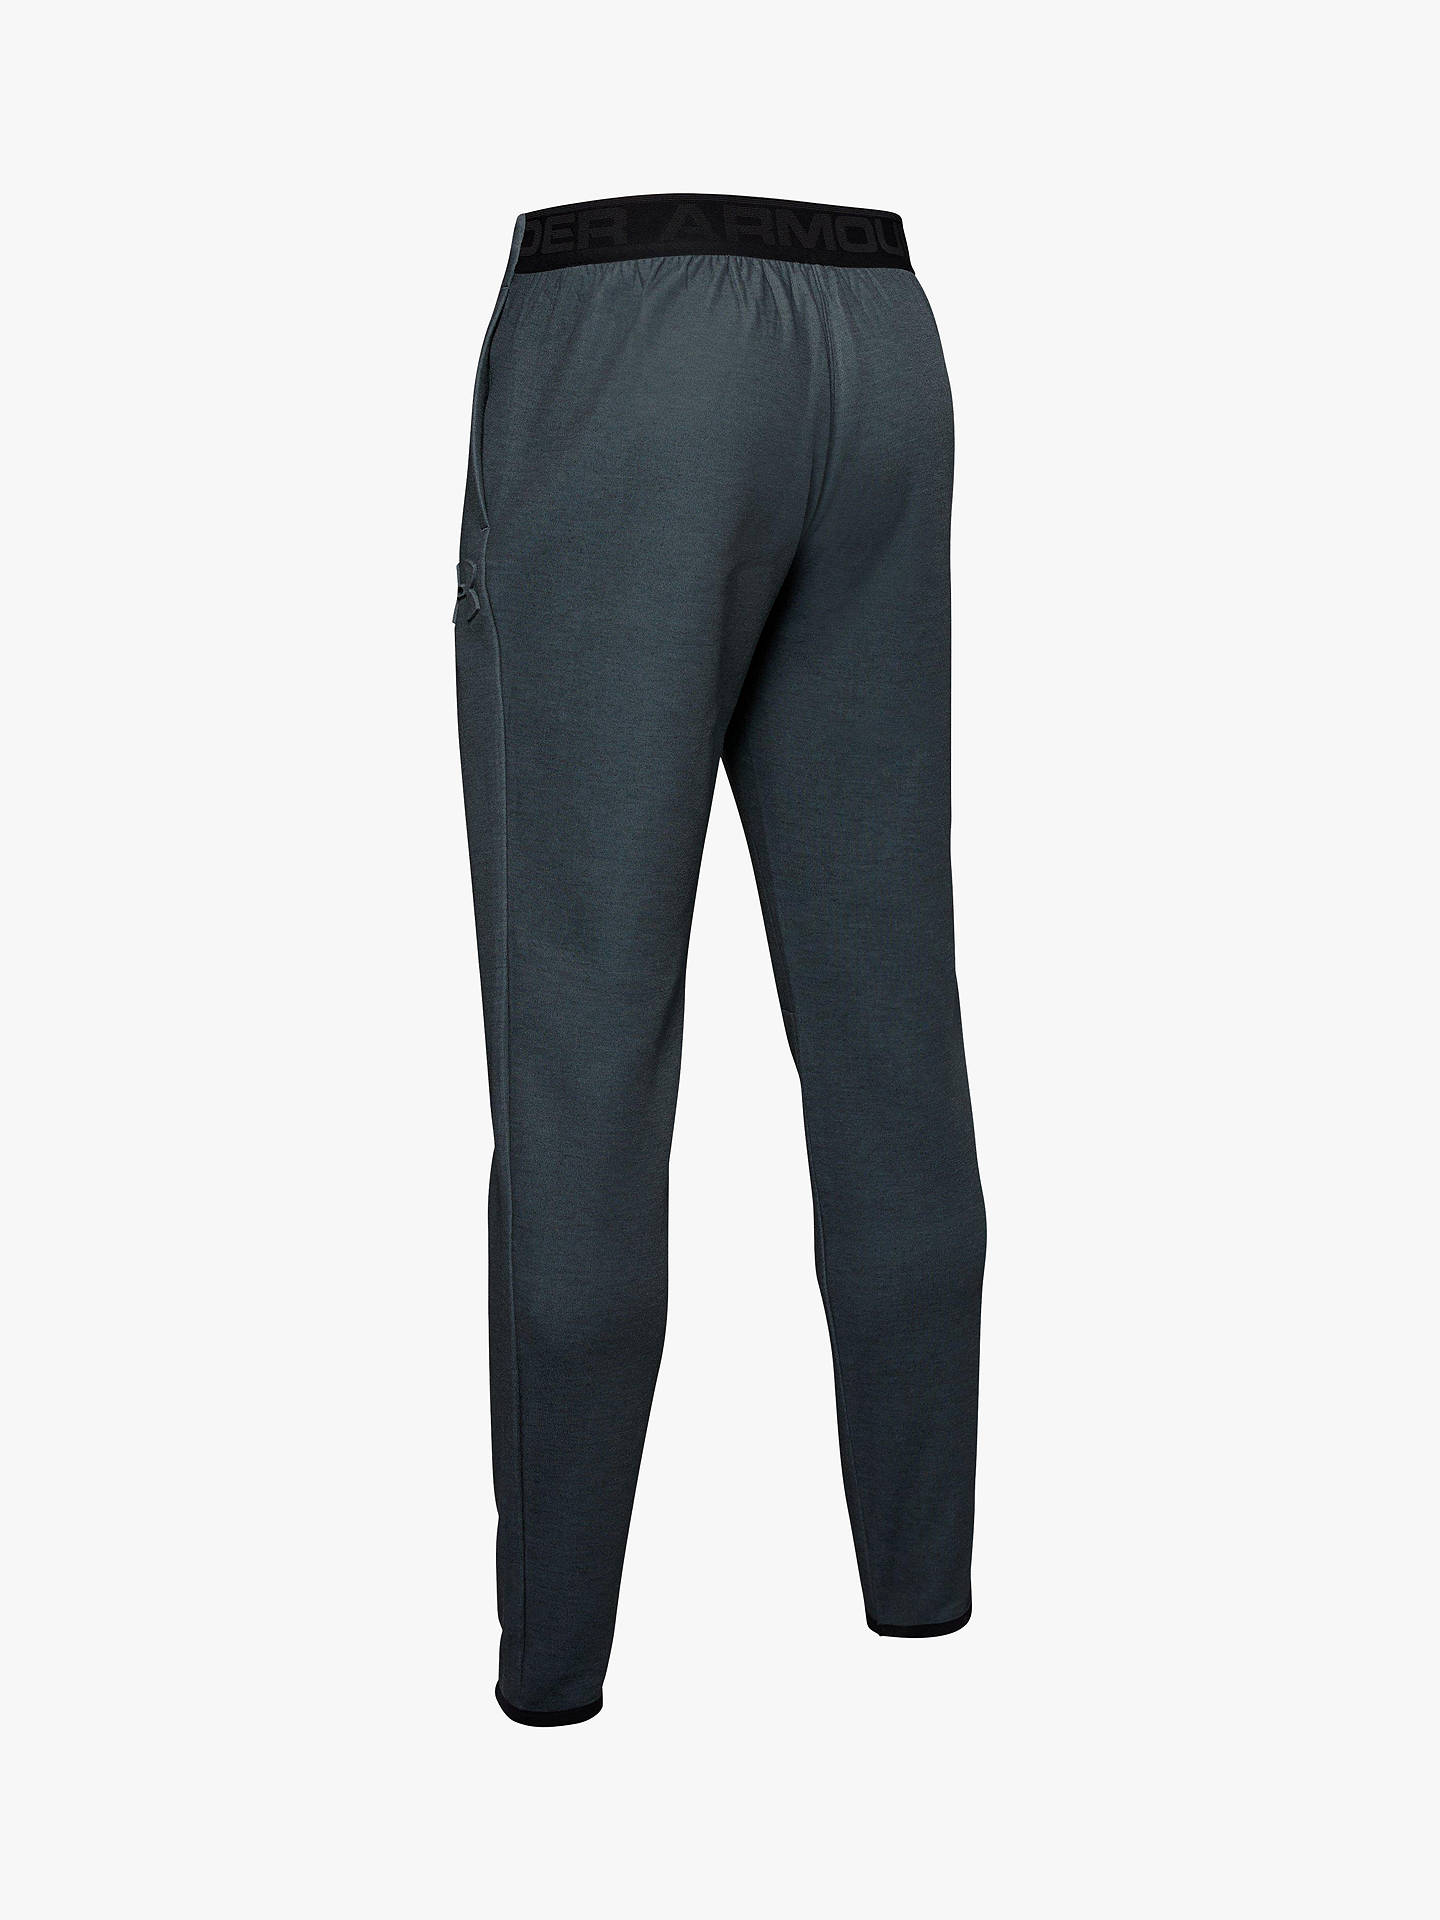 Buy Under Armour Unstoppable Move Light Joggers, Wire Full Heather, S Online at johnlewis.com